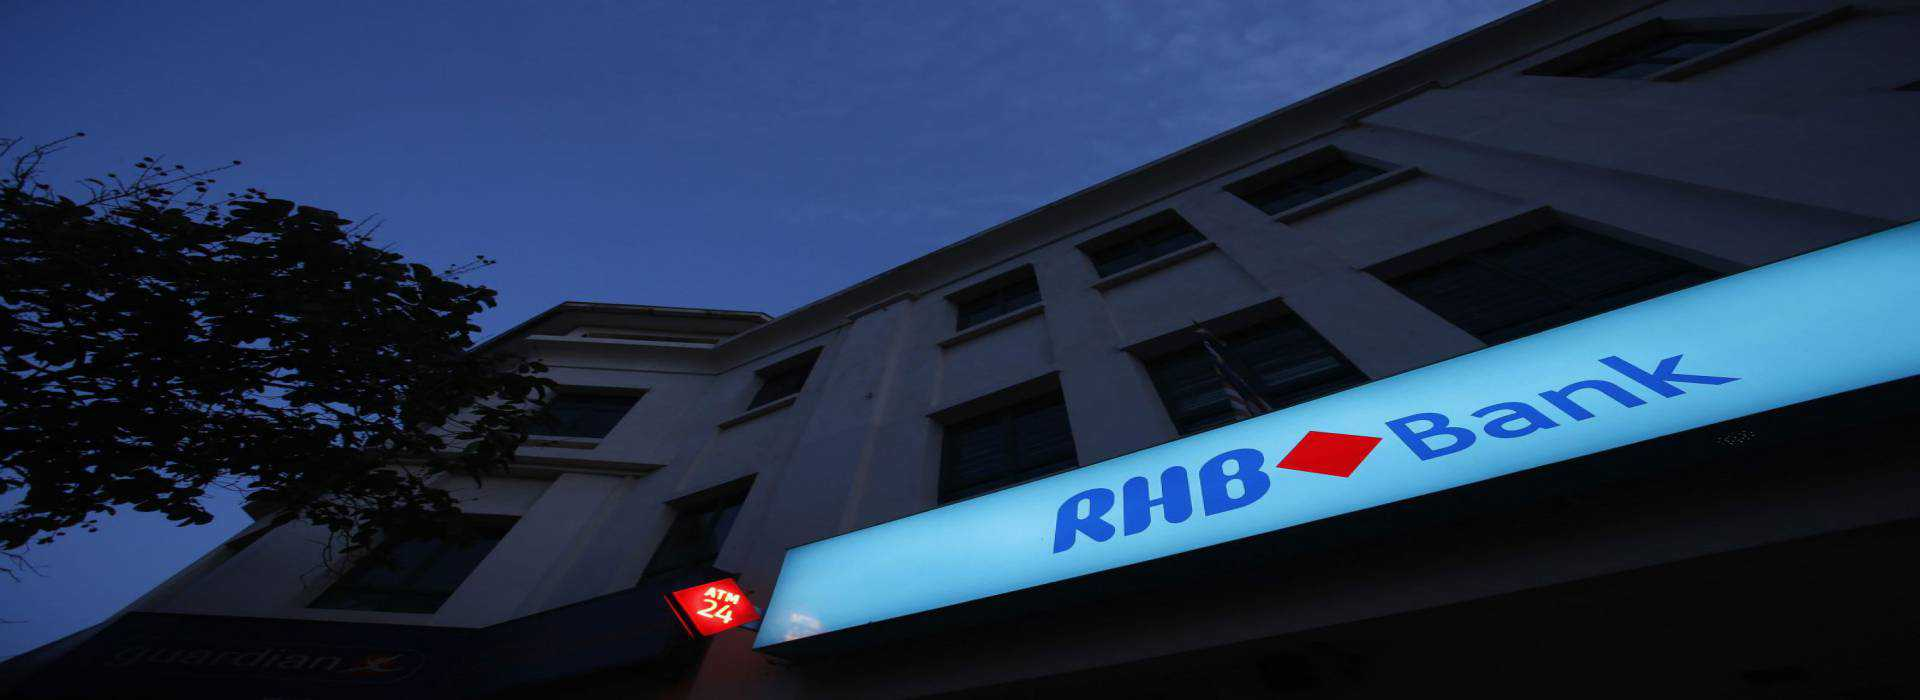 RHB Bank Malaysia Customer Service Number, Address, Email